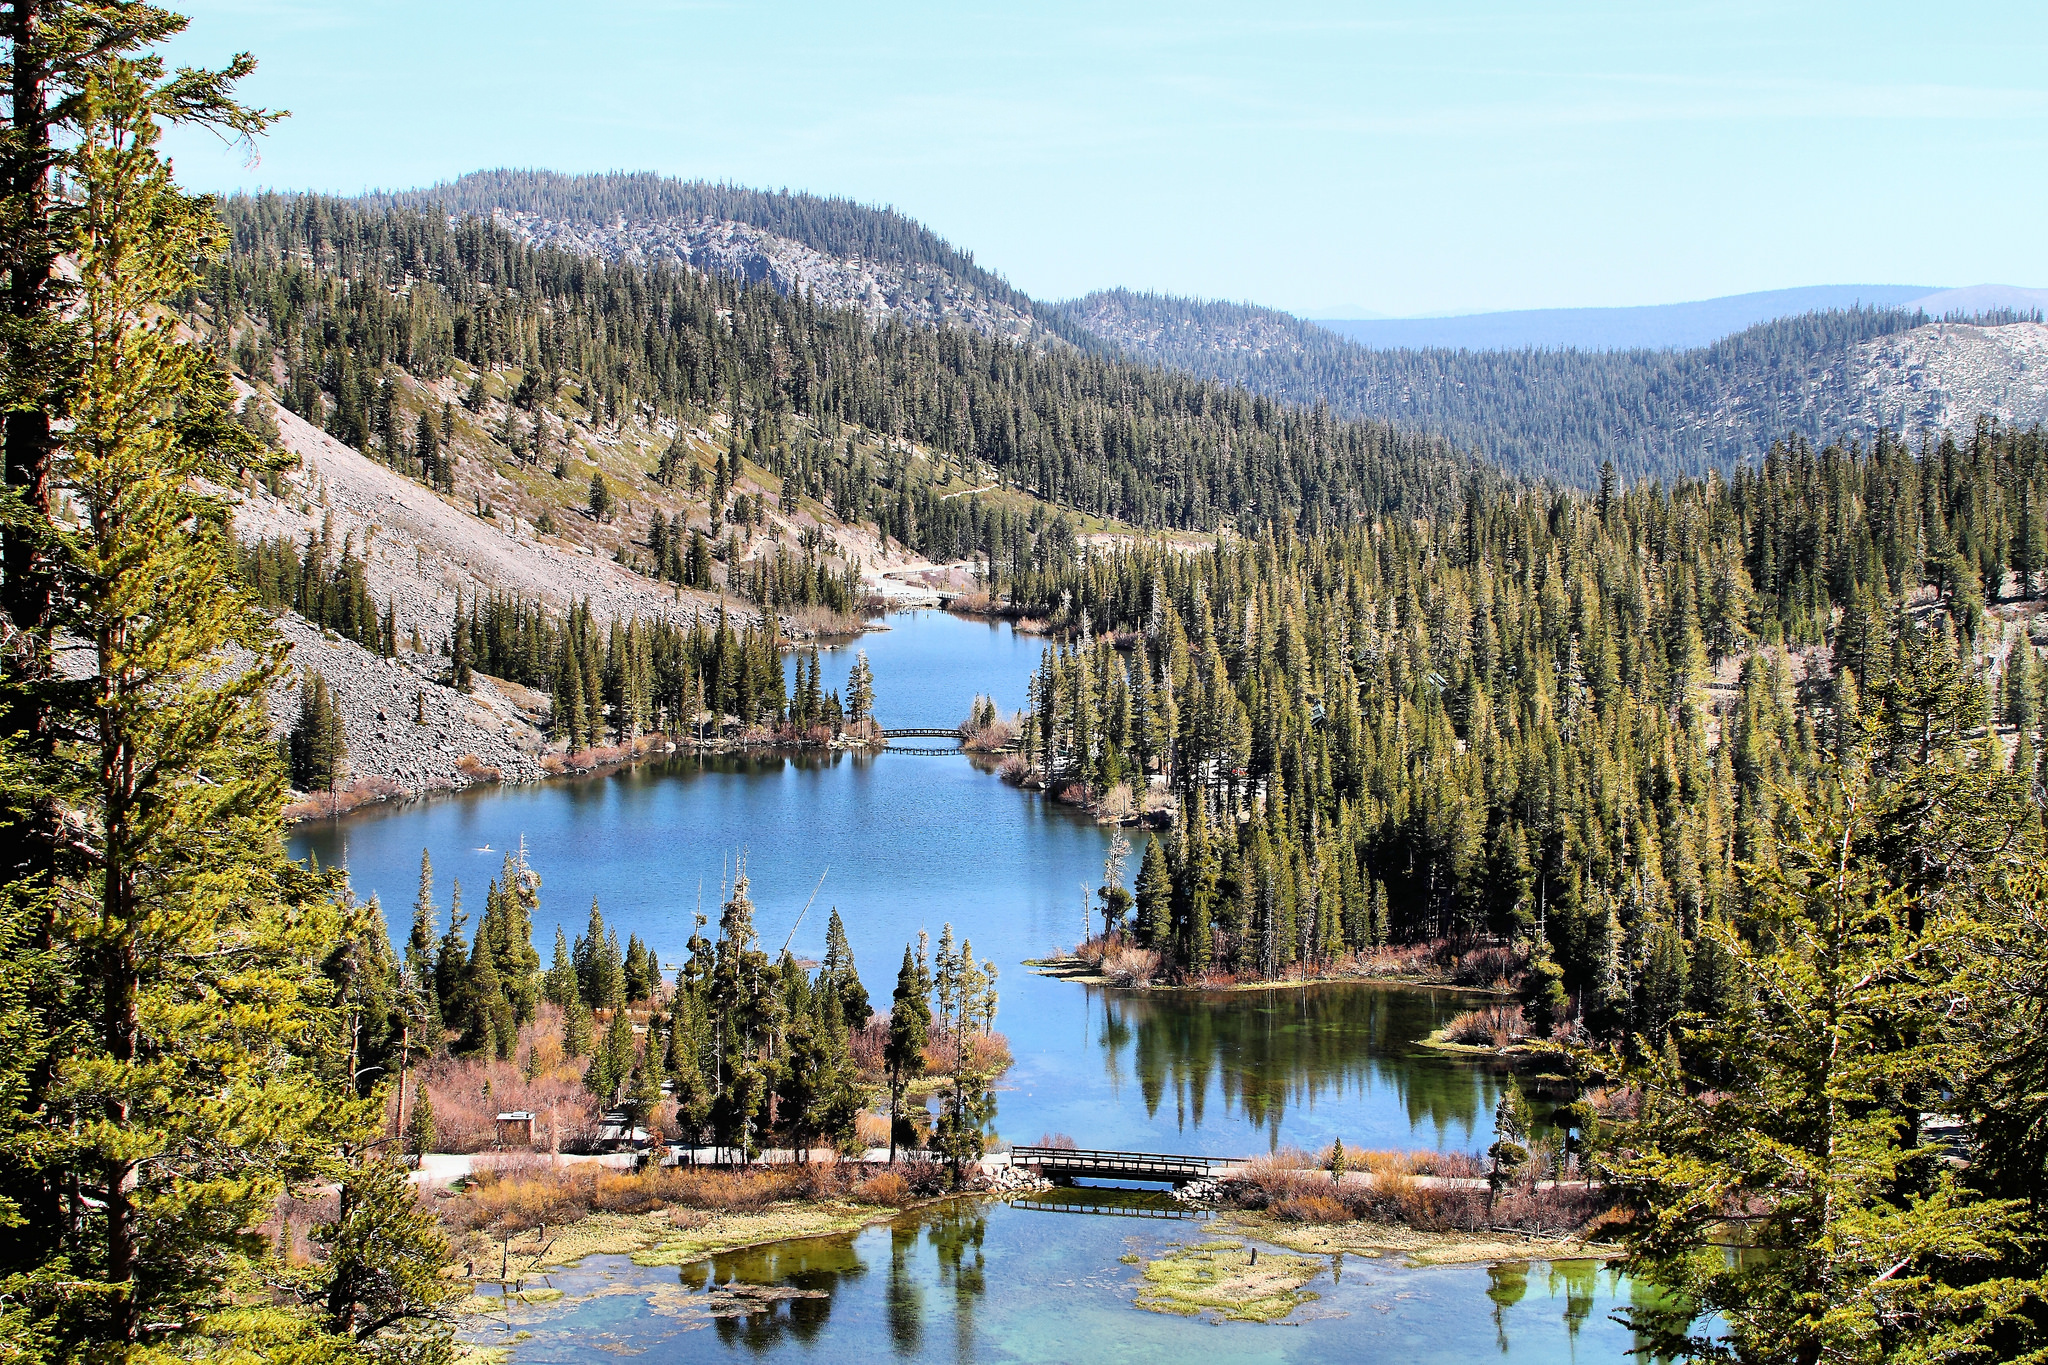 Places to Go Camping Near Los Angeles for an Outdoor Adventure